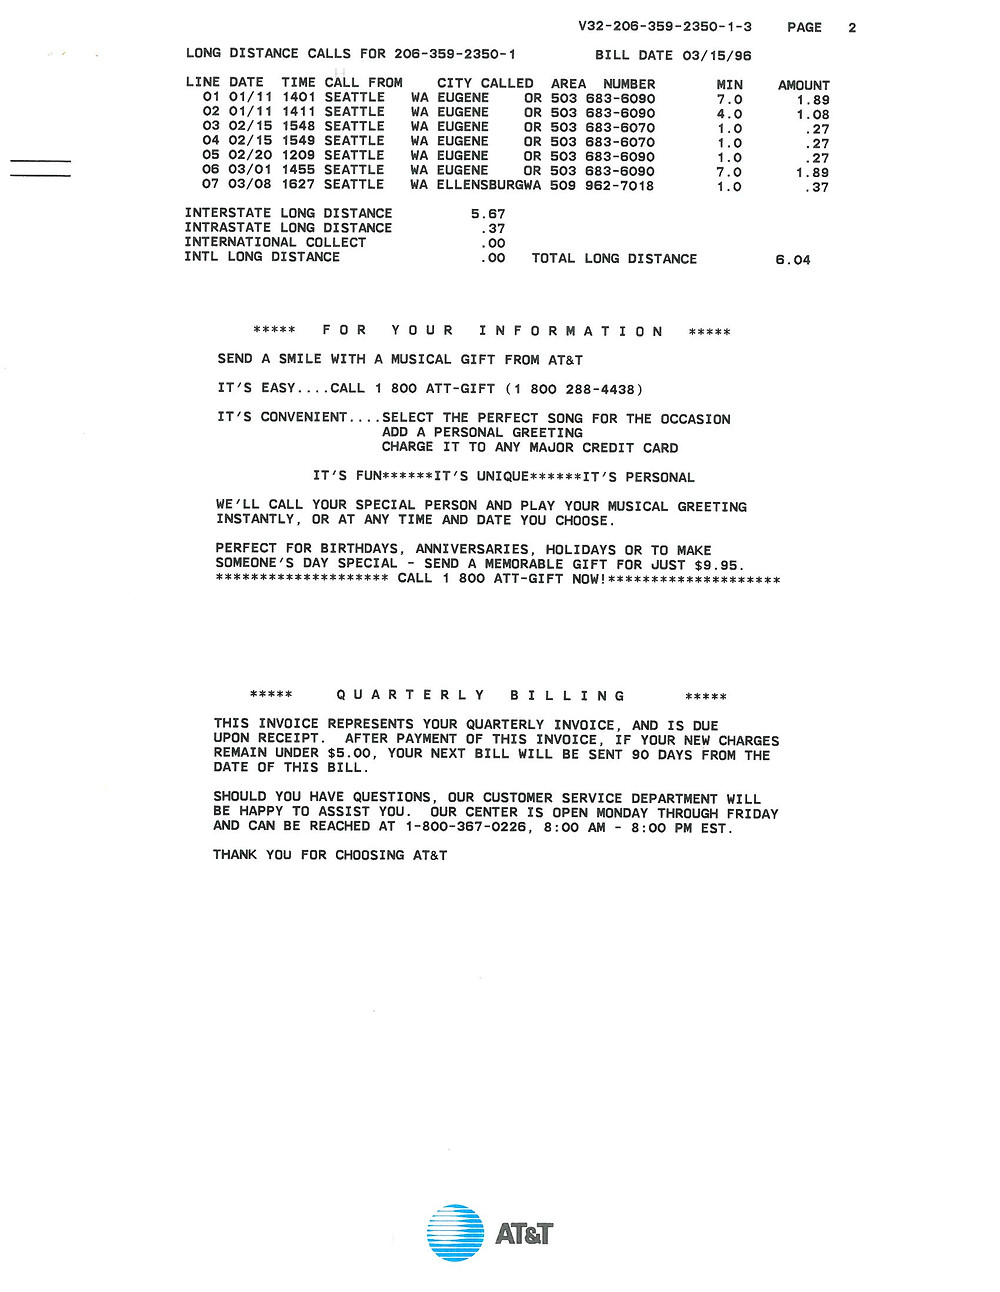 Scanned image of AT&T phone bill